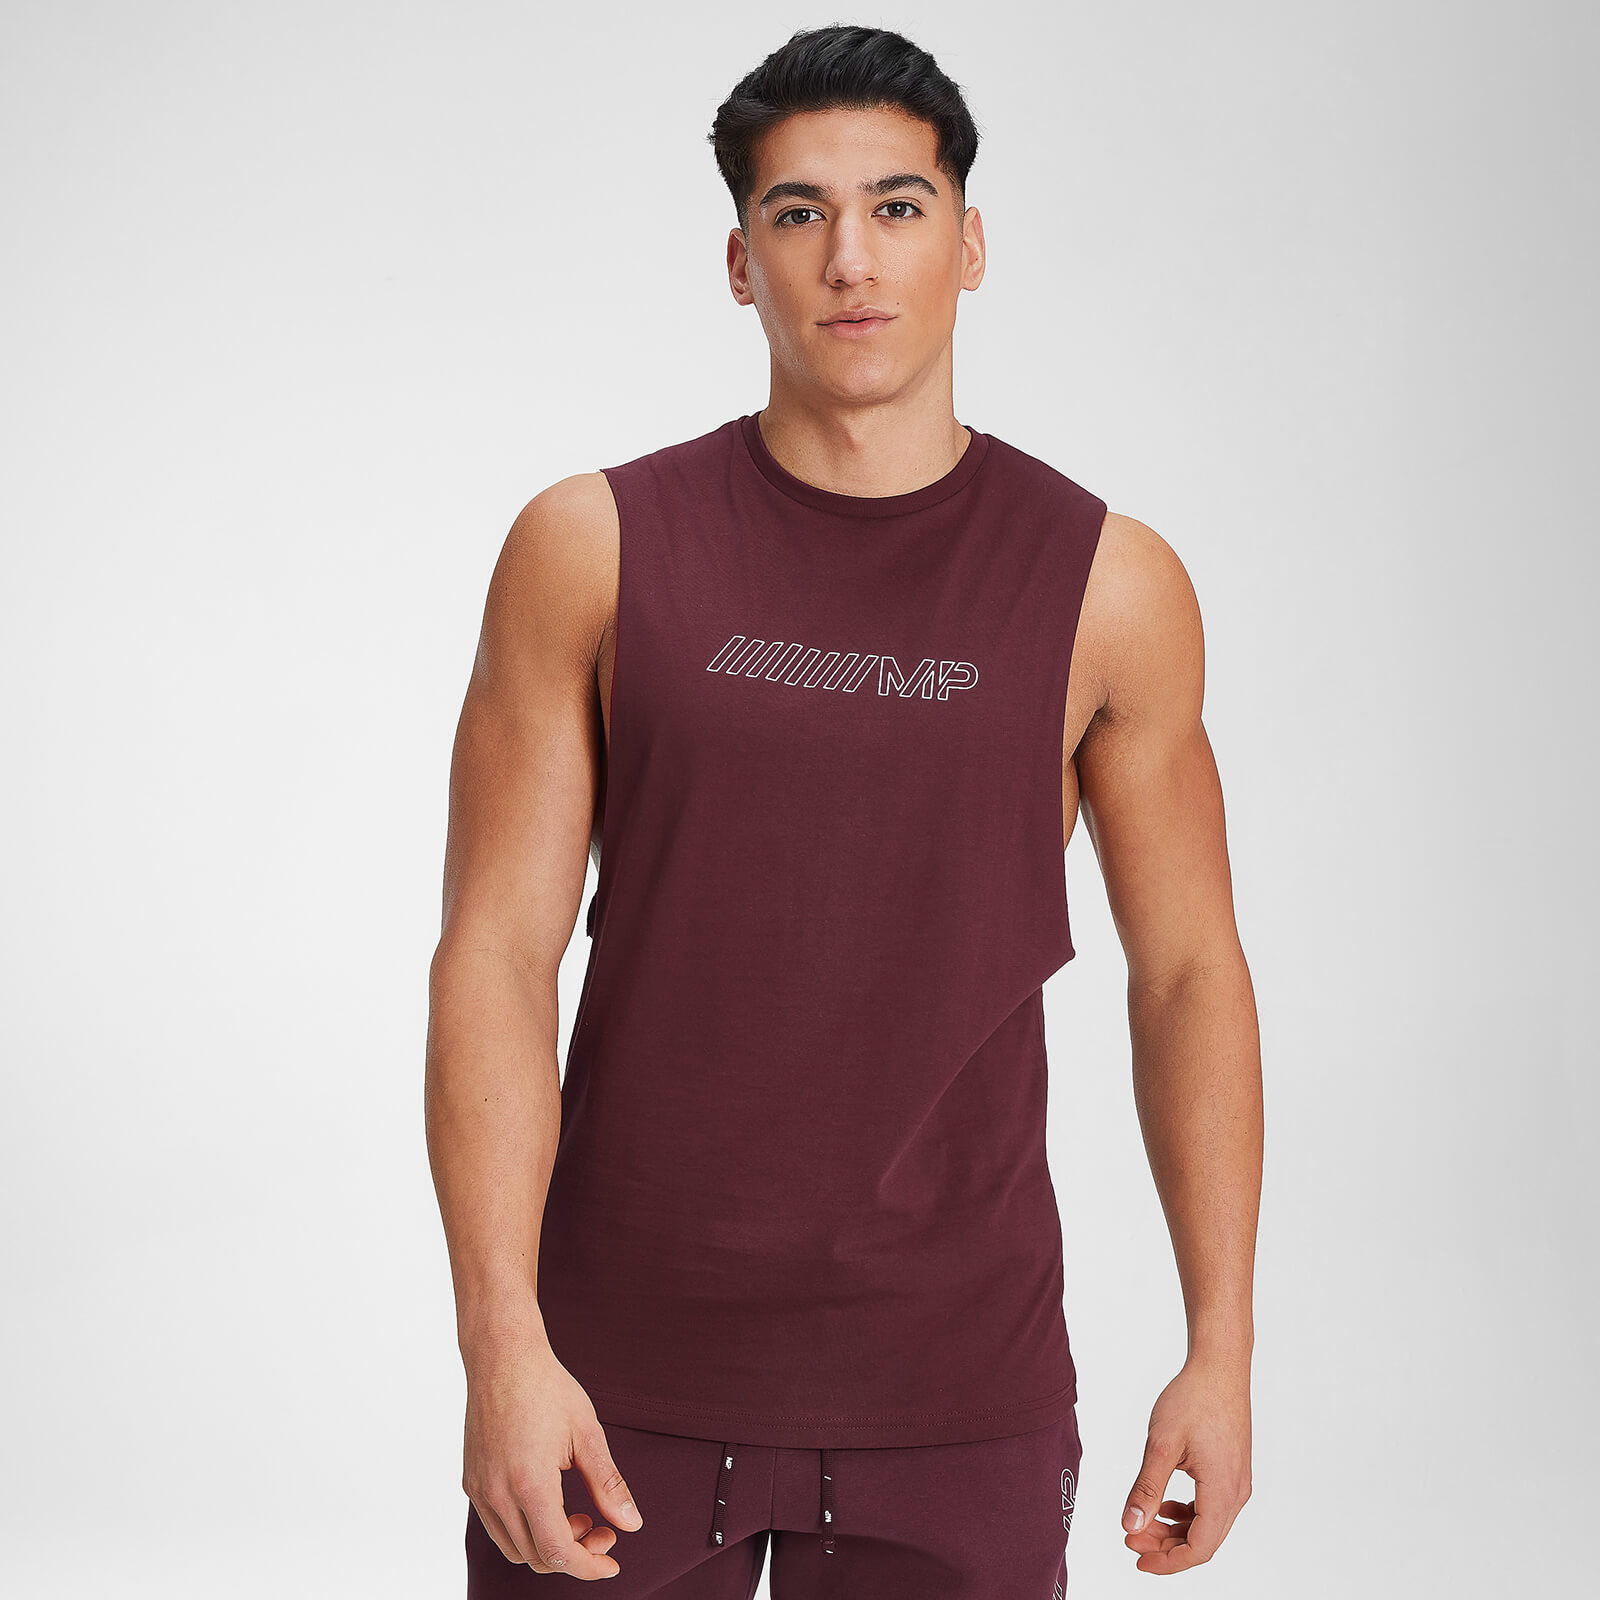 MP Men's Outline Graphic Tank - Washed Oxblood - XL